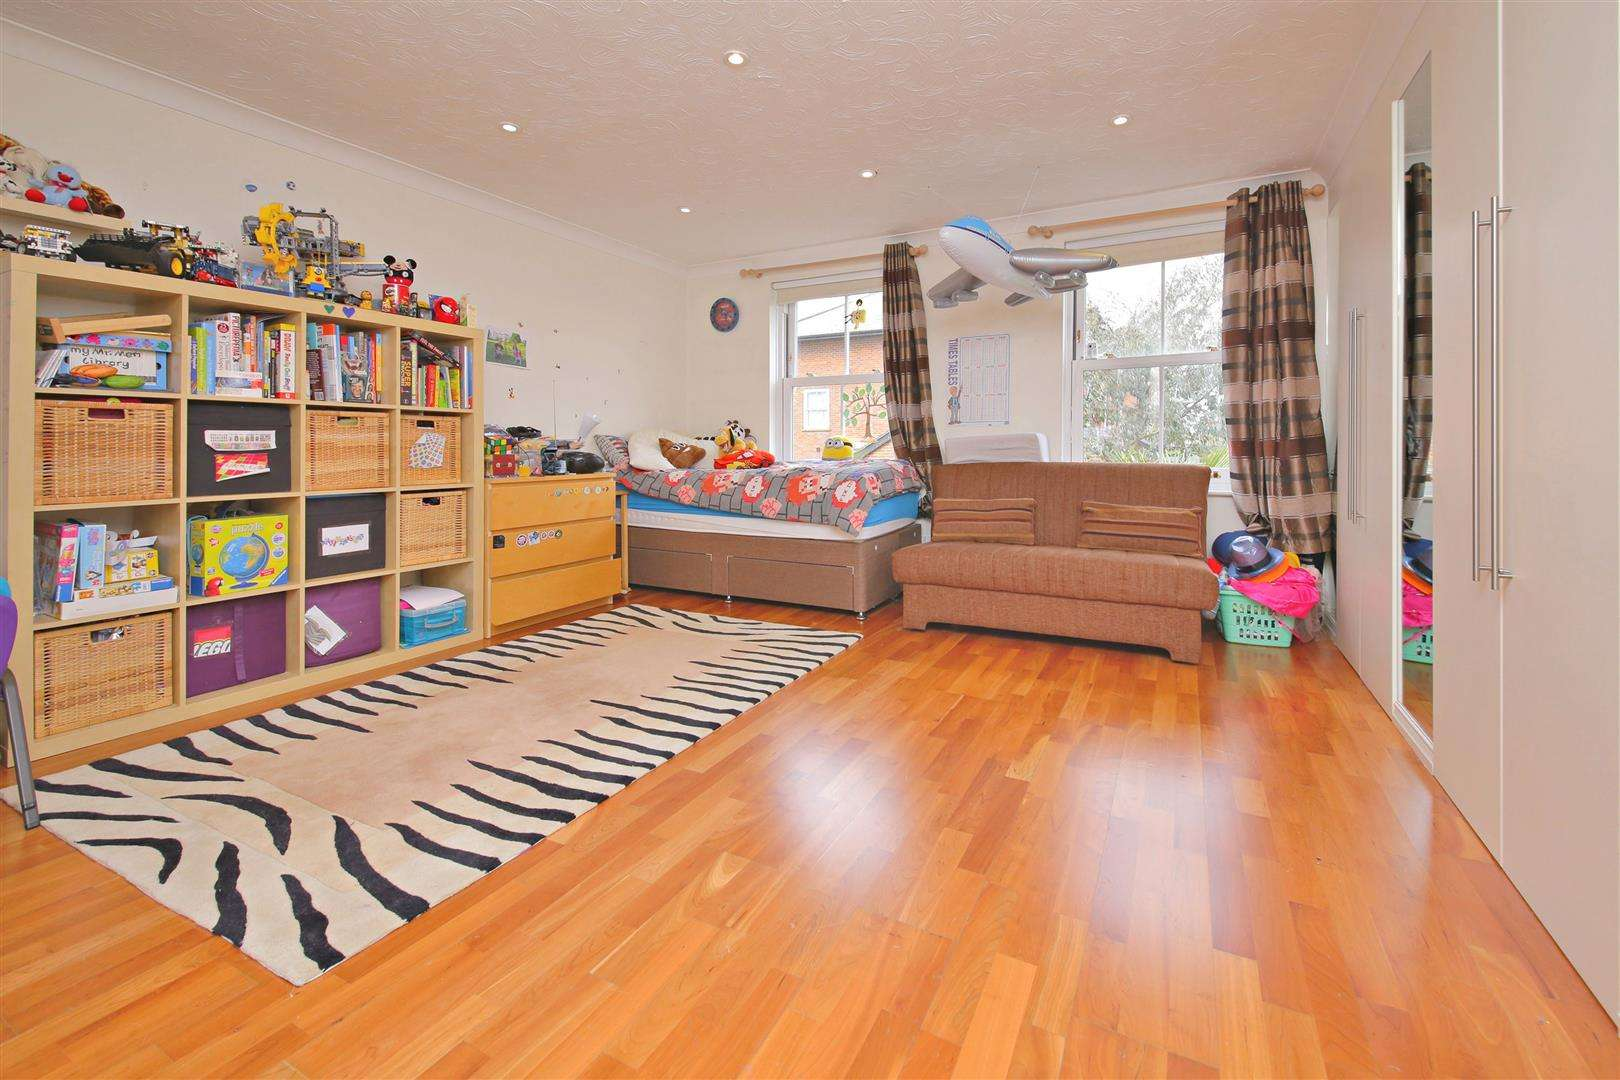 4 bed to rent in Shenley - (Property Image 5)